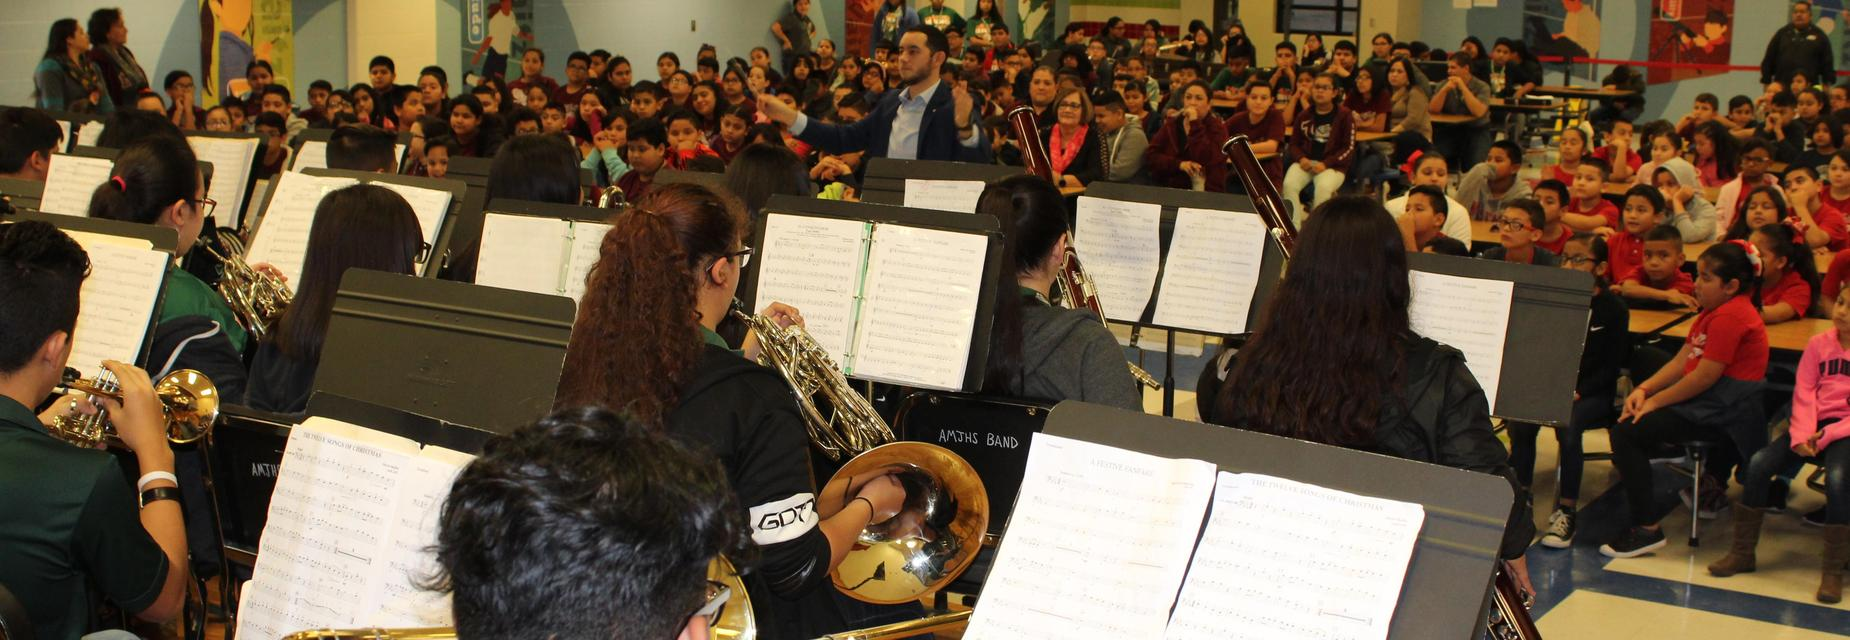 AMJH band visits the campus